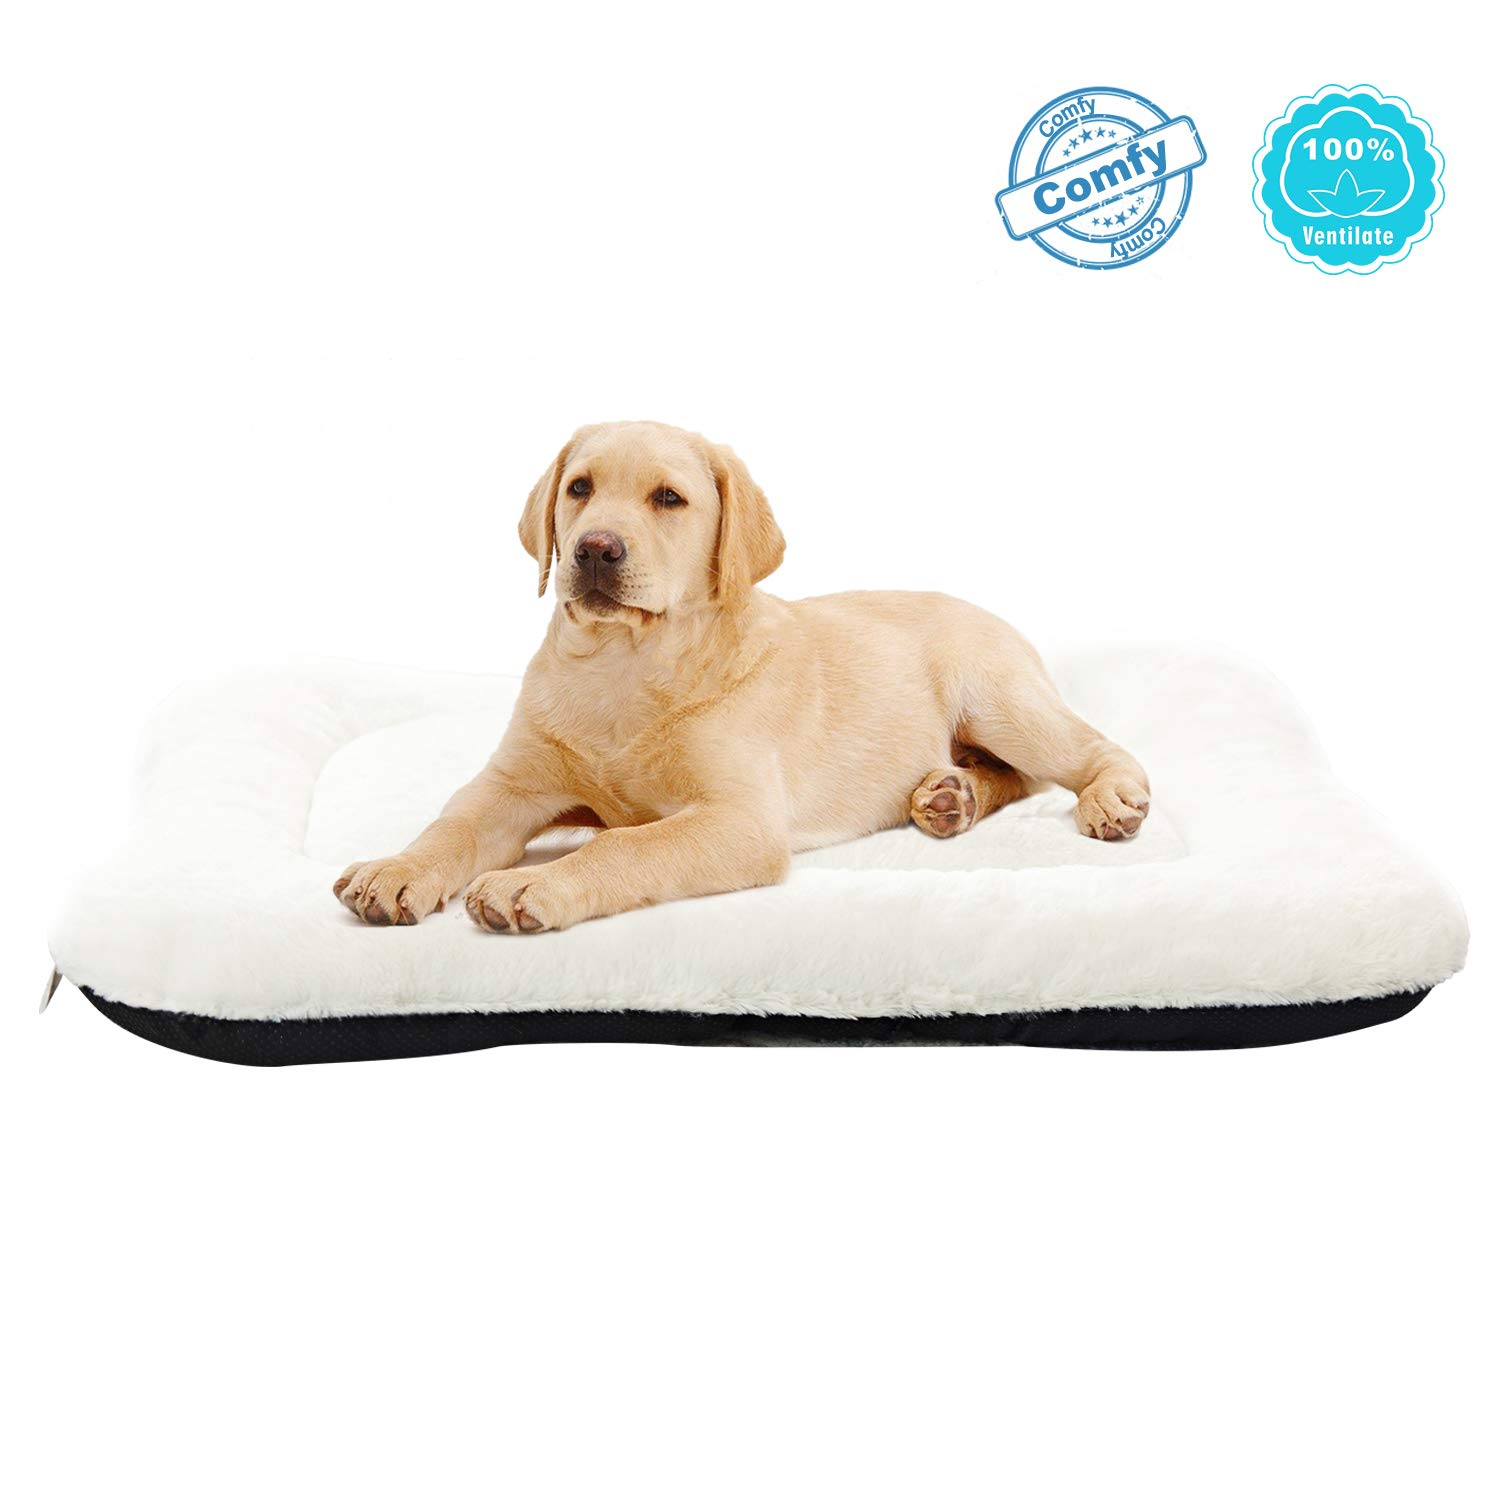 ANWA Dog Bed Pet Cushion Puppy Bed Crate Bed Mat Soft Durable Cozy for Medium Dogs